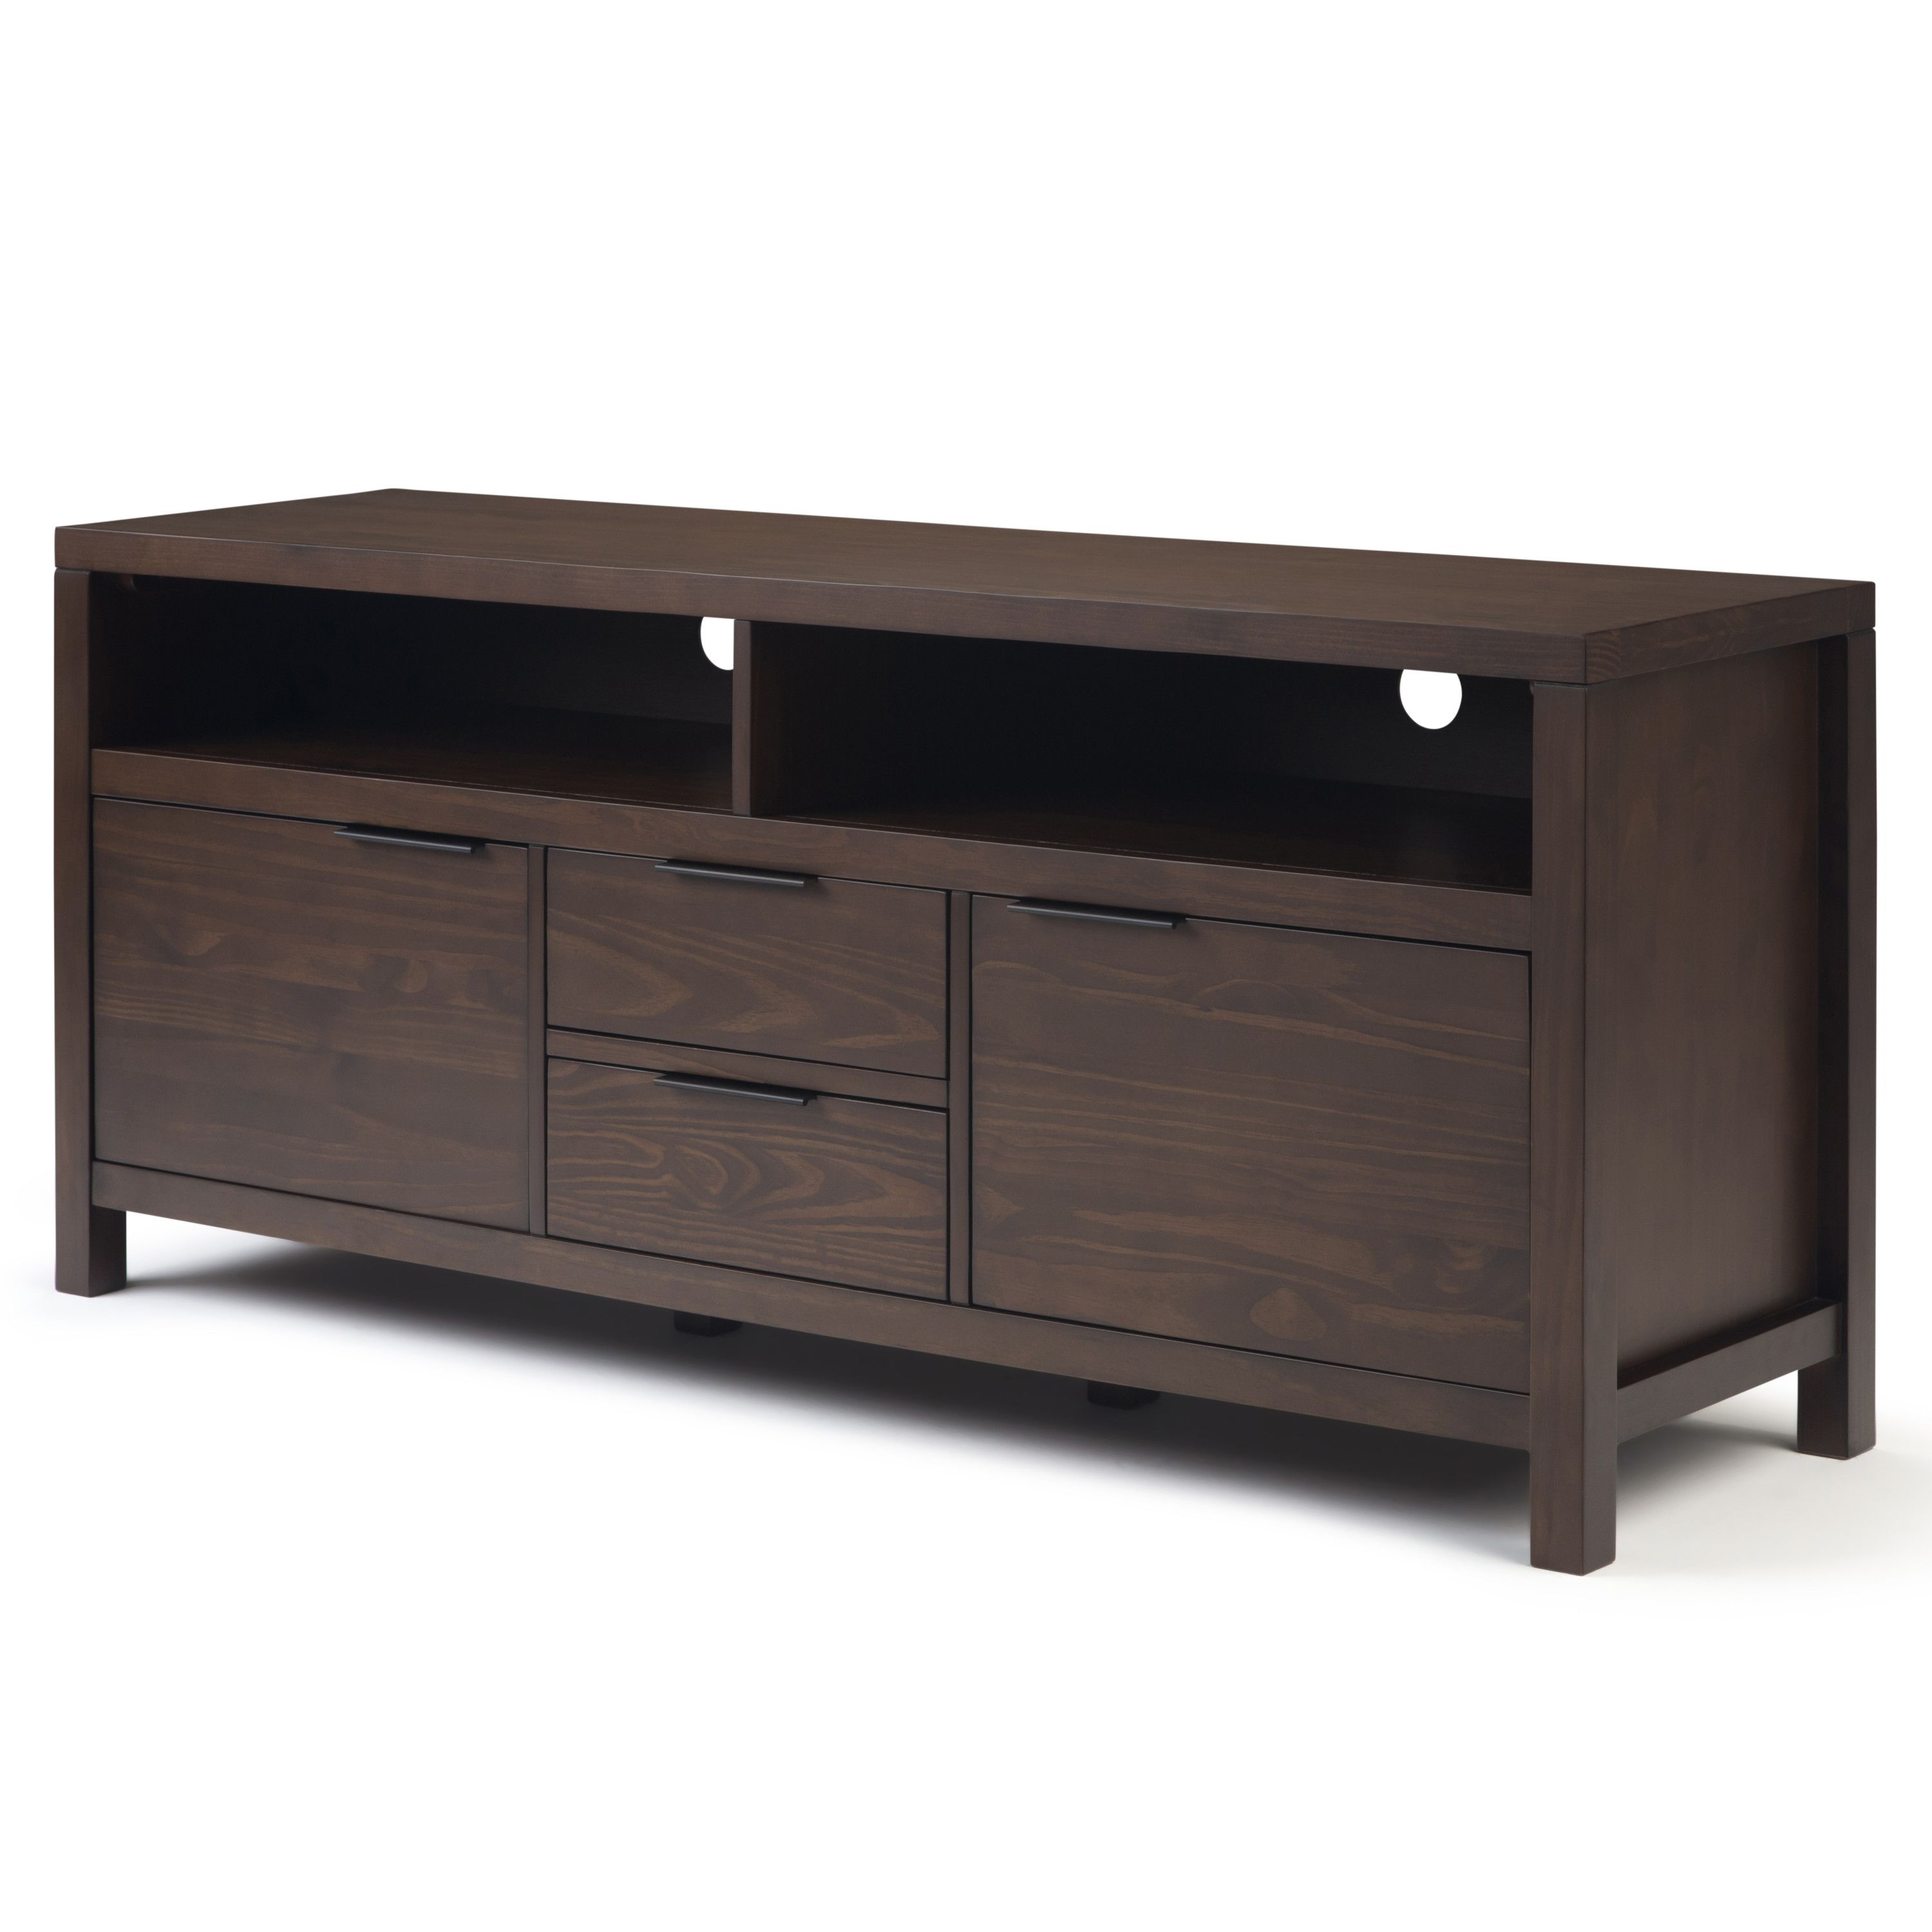 Brooklyn Max Auster Solid Wood 60 Inch Wide Contemporary Modern Tv Media Stand In Warm Walnut Brown For Tvs Up To 65 Inches Walmart Com Modern Tv Tv Media Stands Modern Contemporary Design